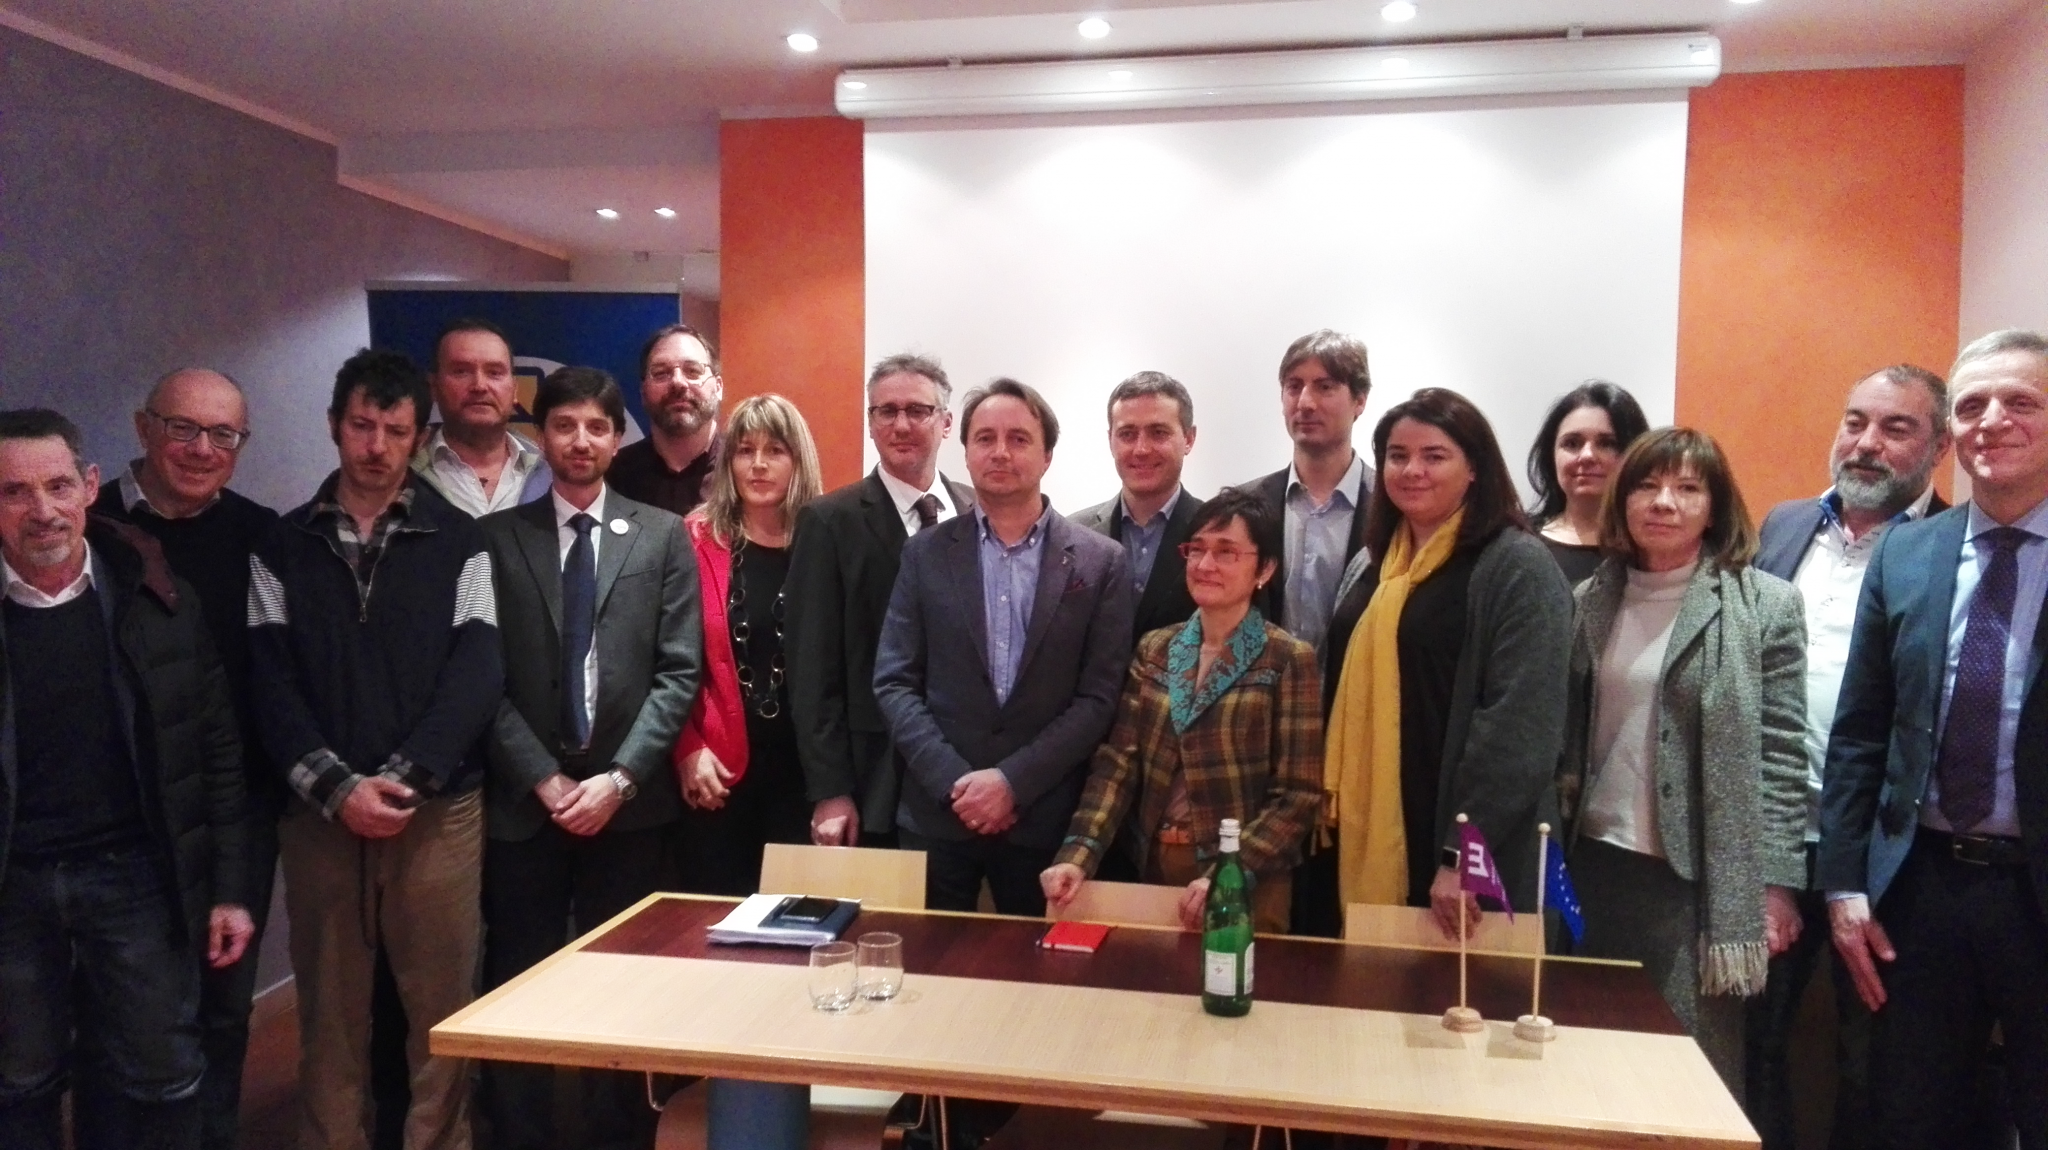 EFA launches new platform gathering six political parties in the Italian peninsula